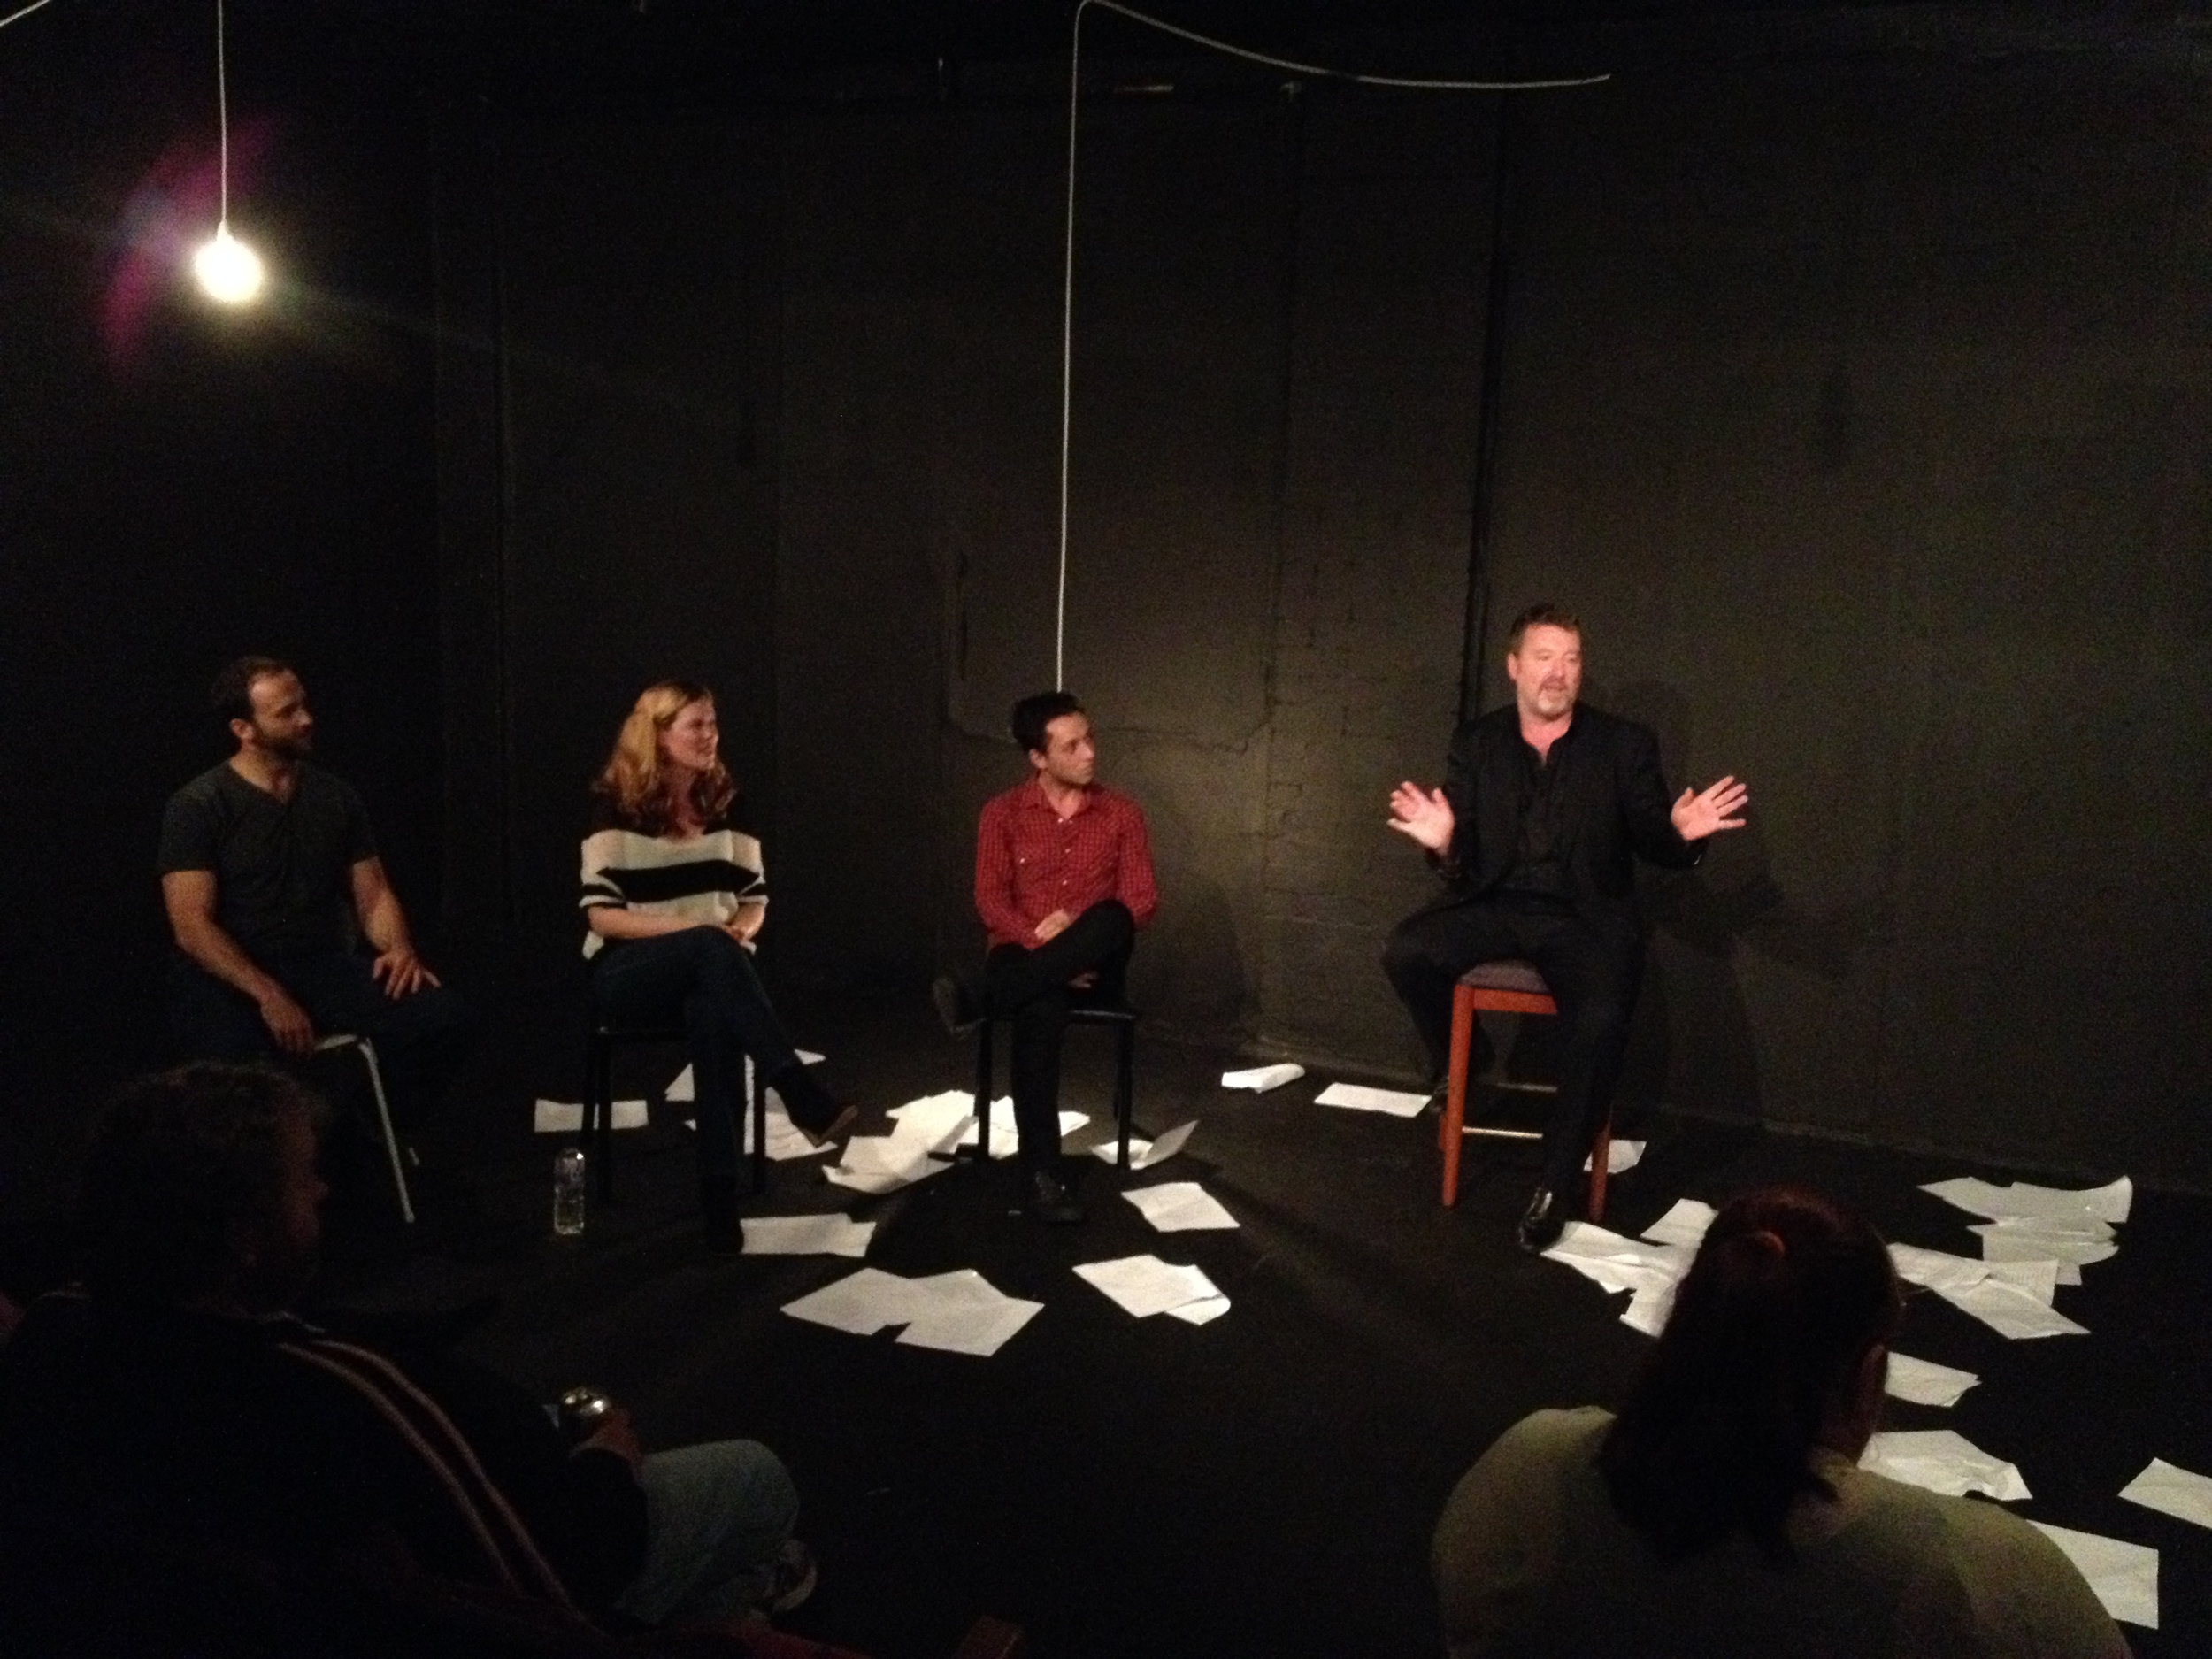 Post-show Q&A with Ross Mueller